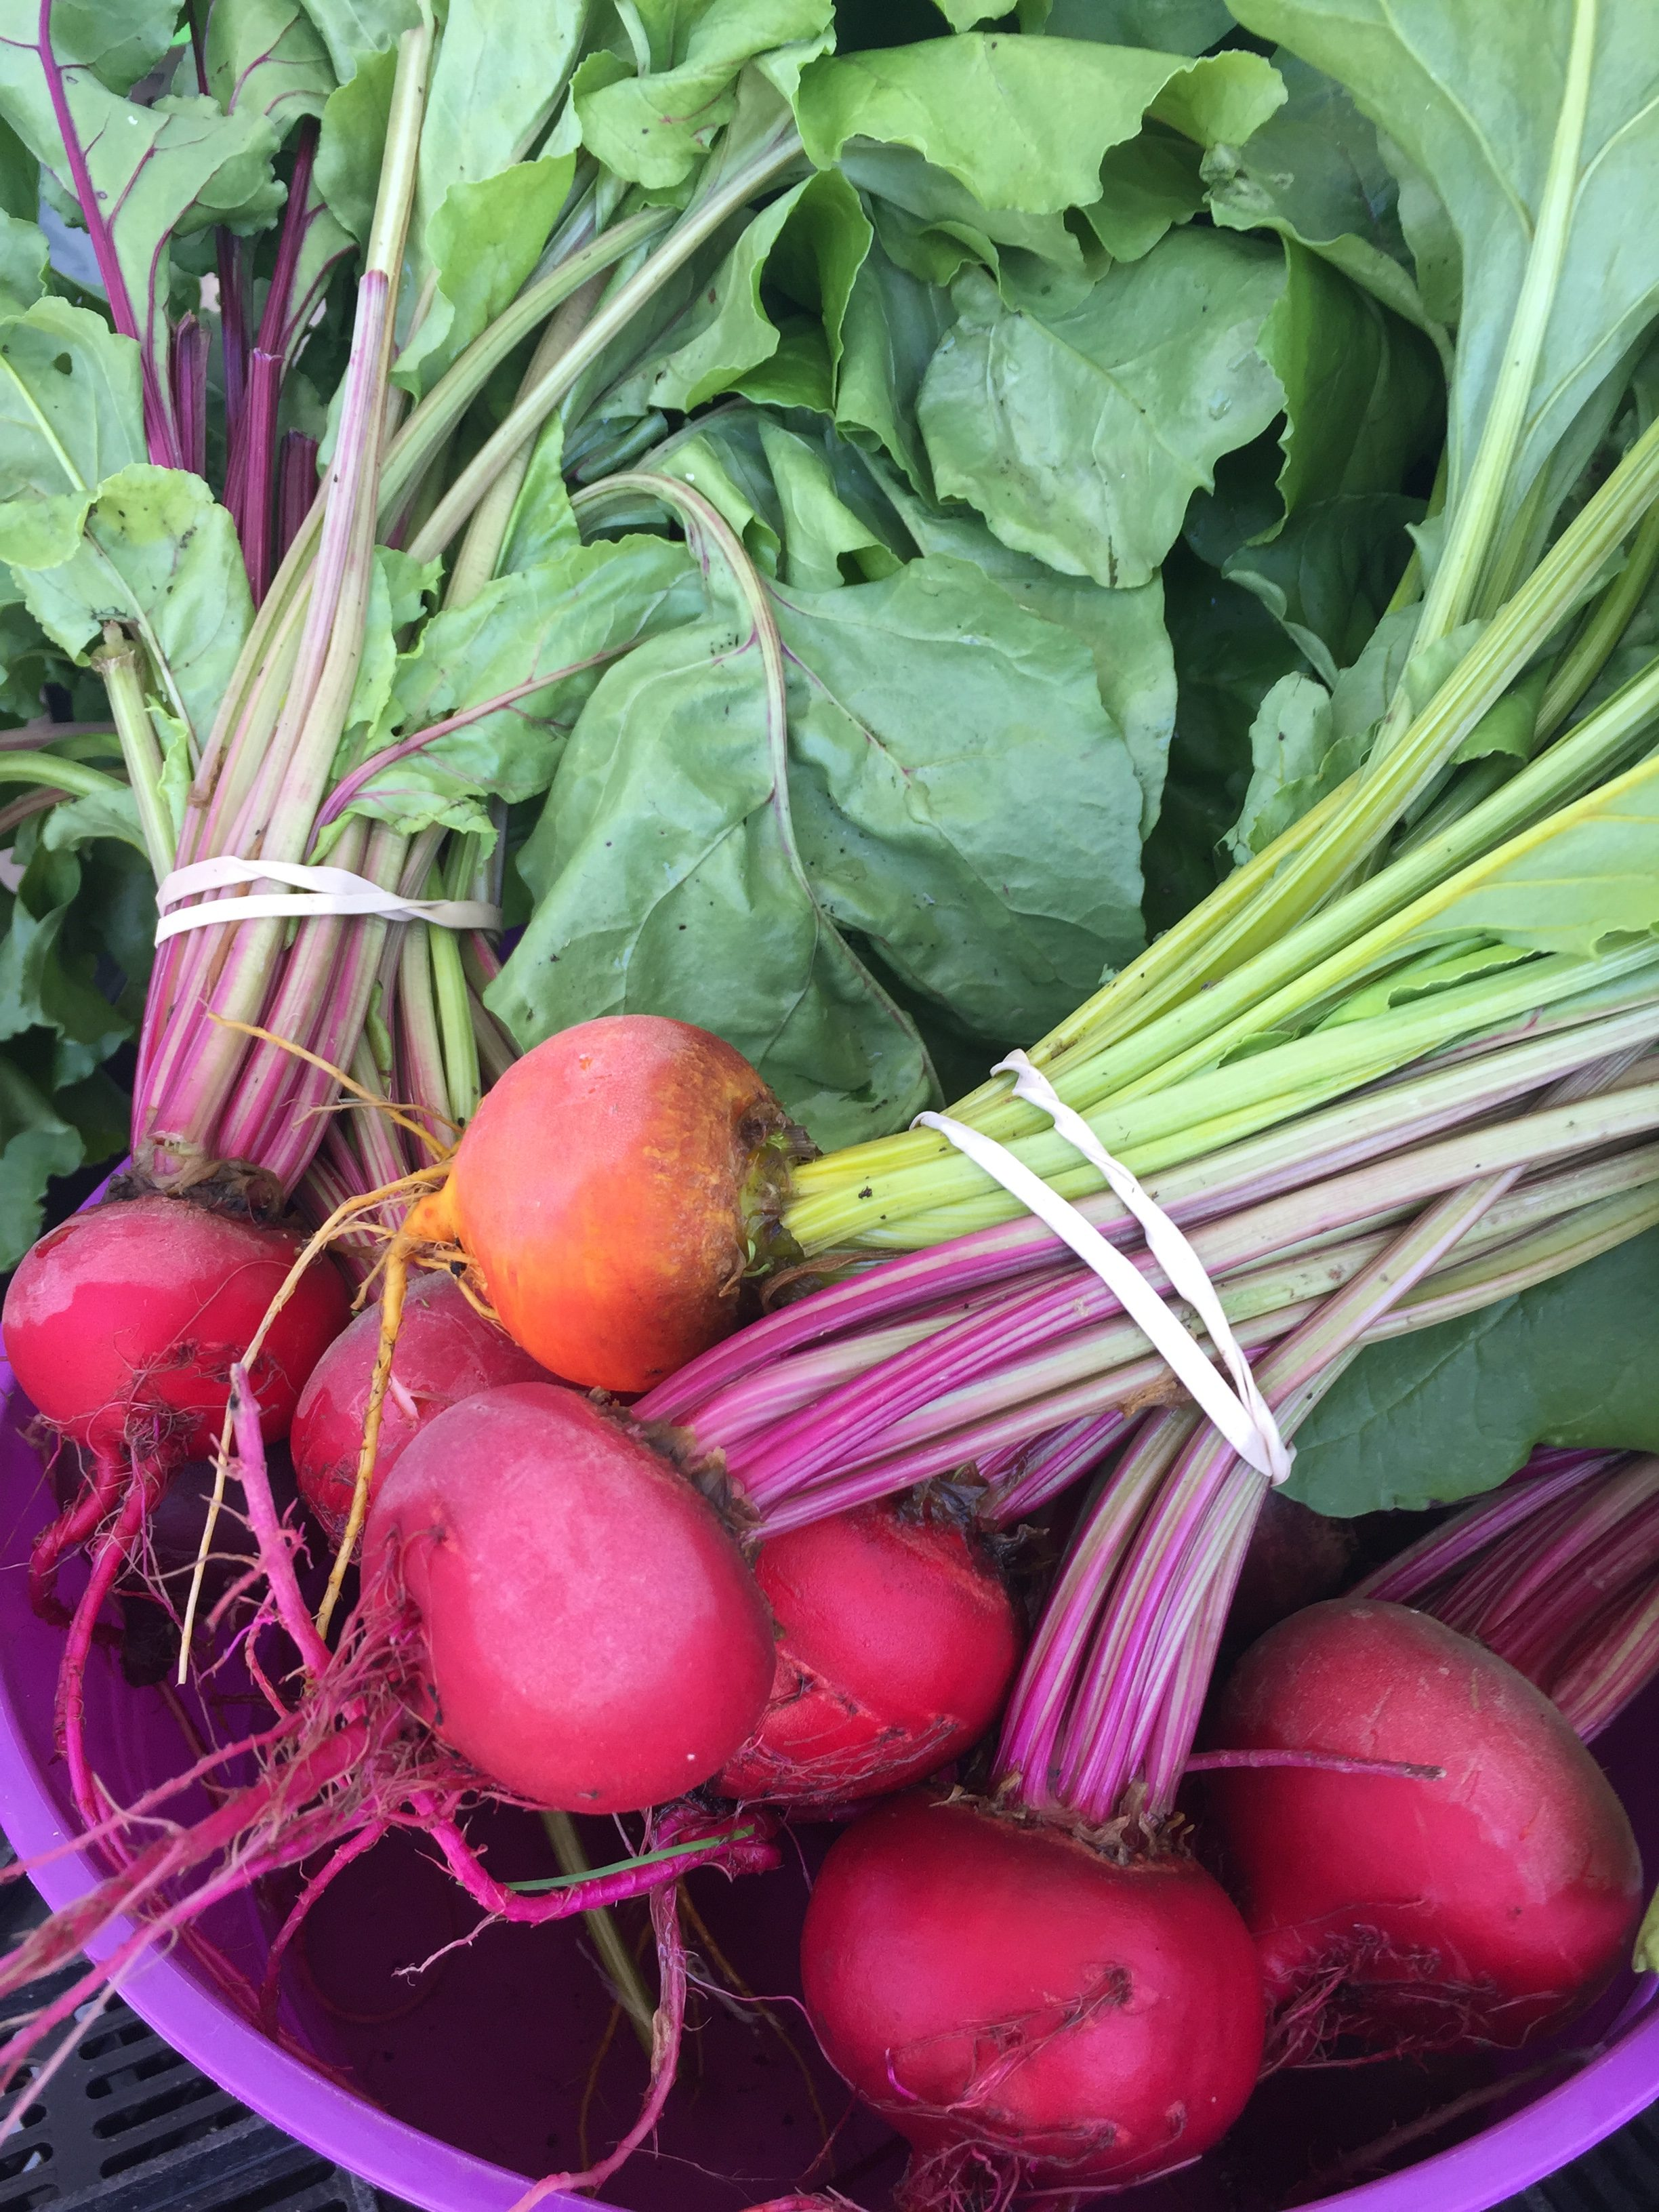 Striped and Golden Beets and Beet Greens from HeartBeet Farms